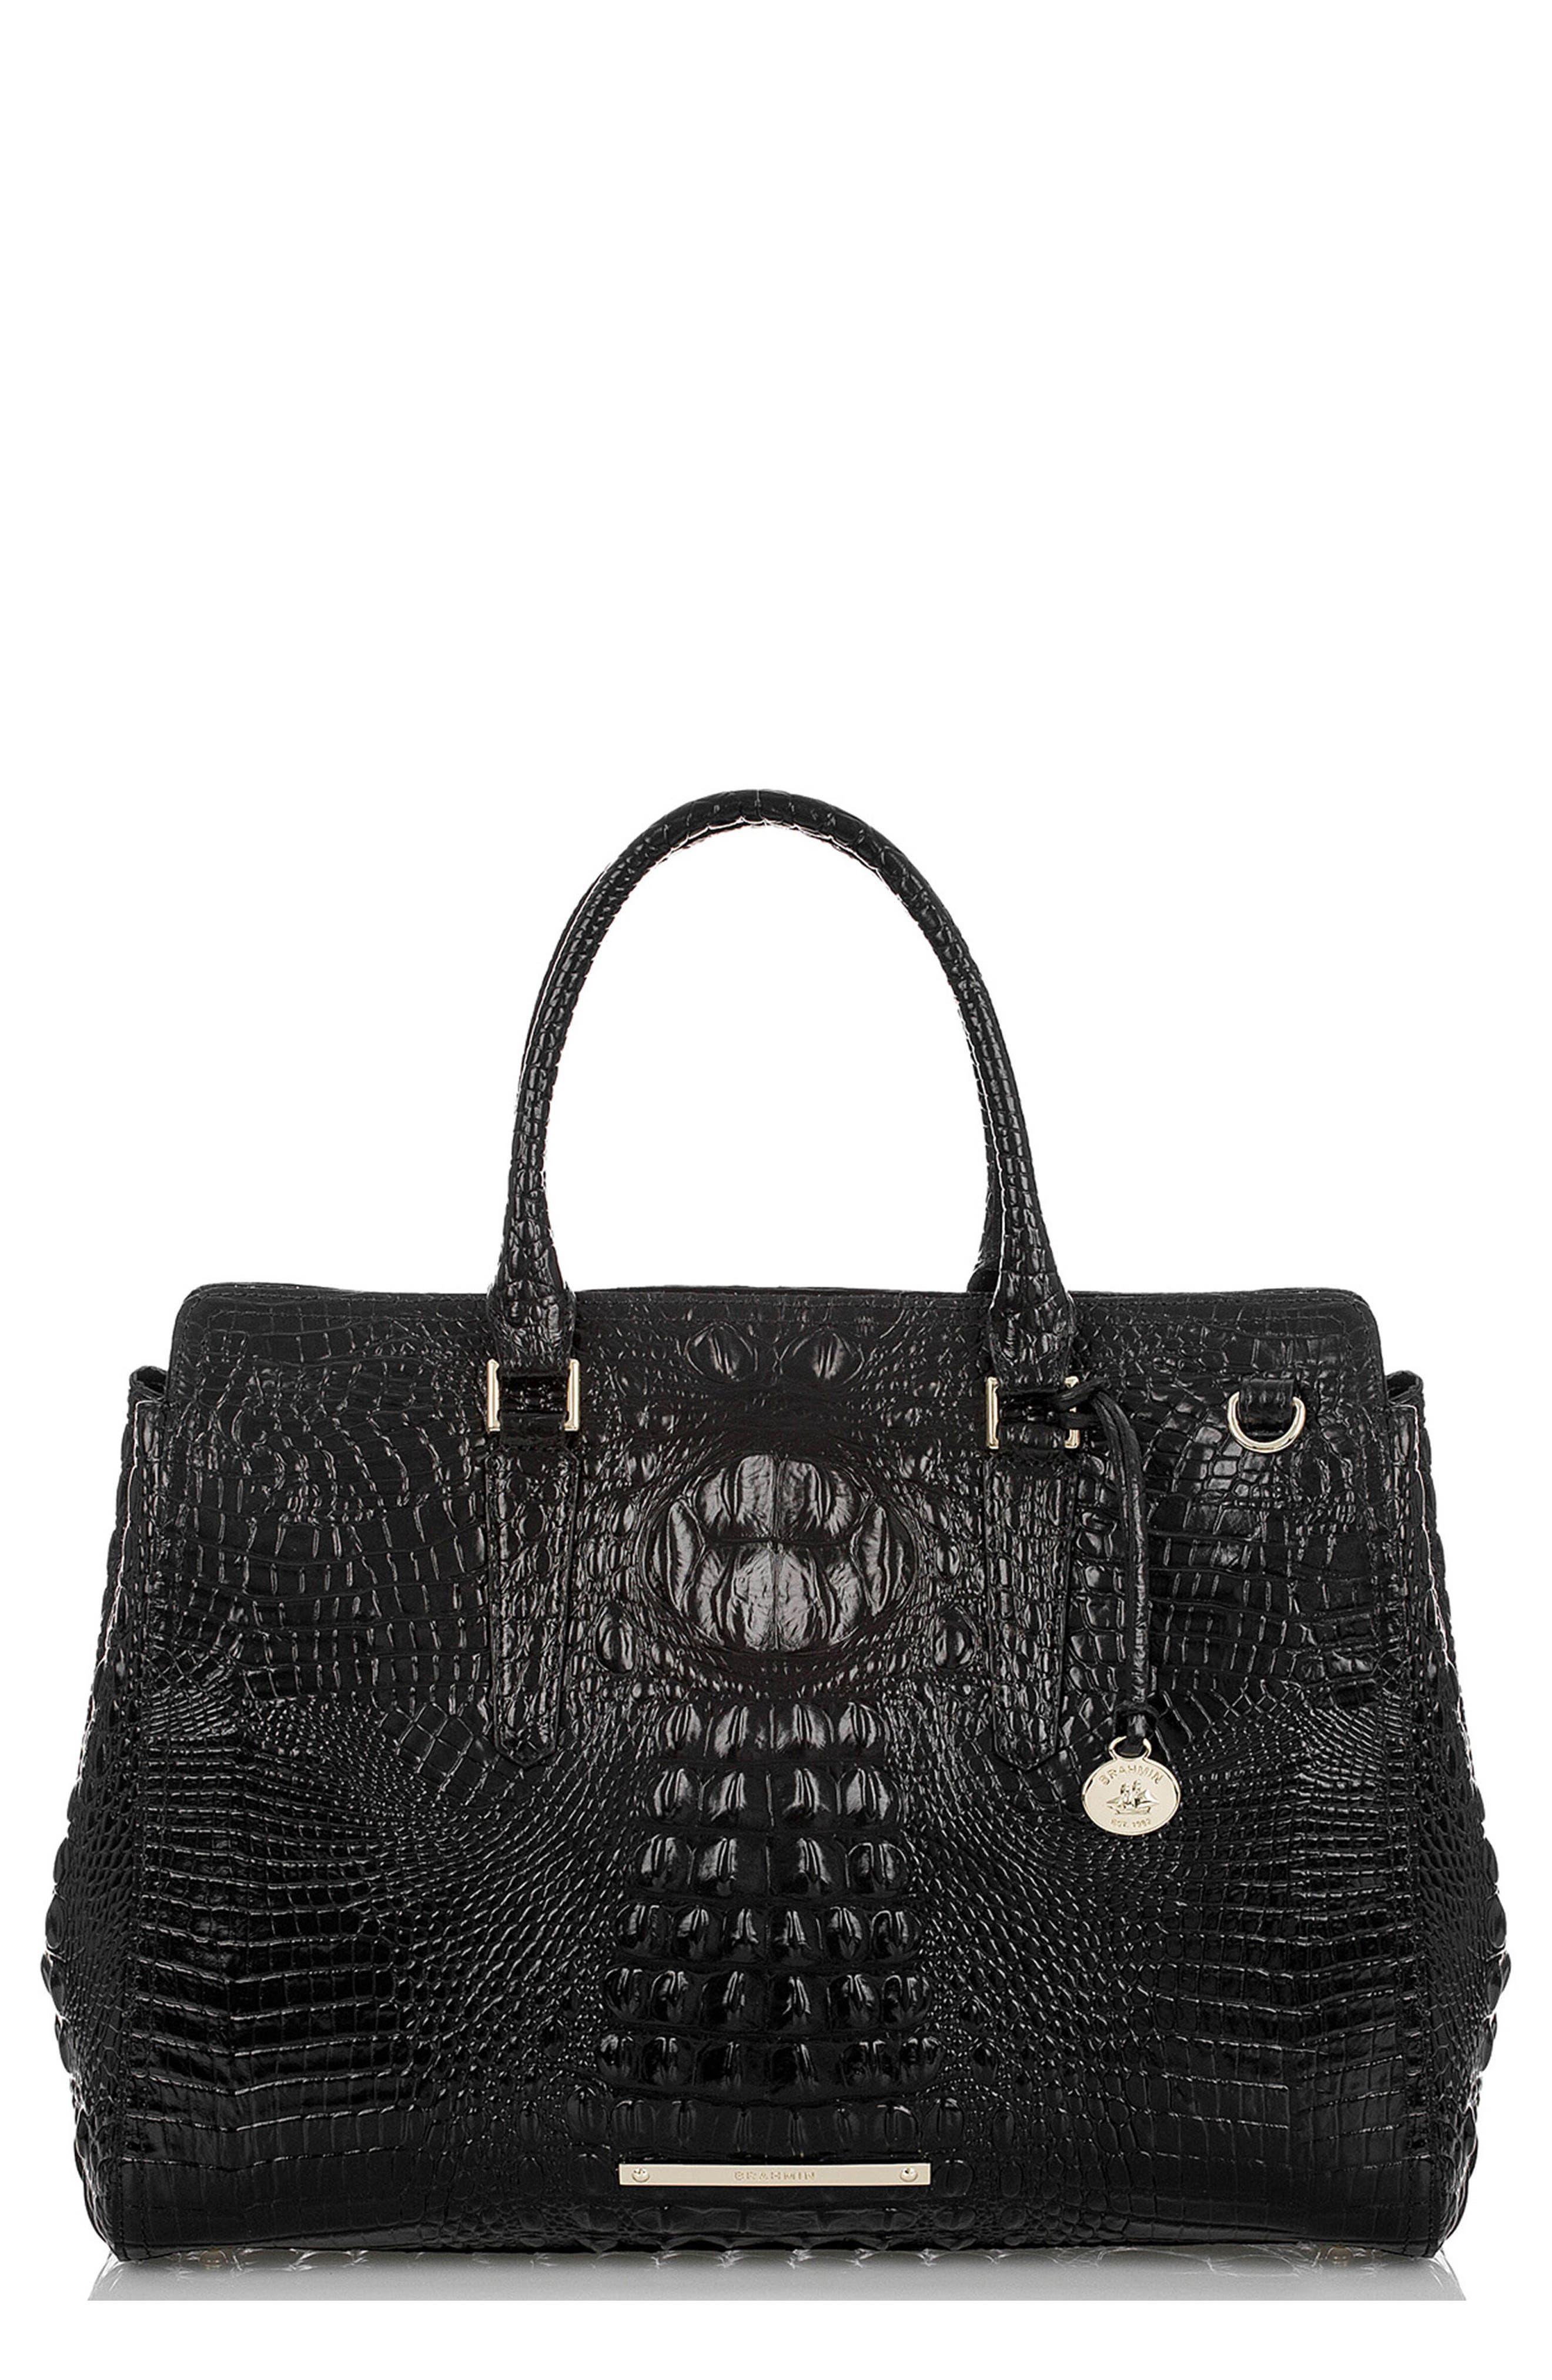 Finley Croc Embossed Leather Tote,                         Main,                         color, 001